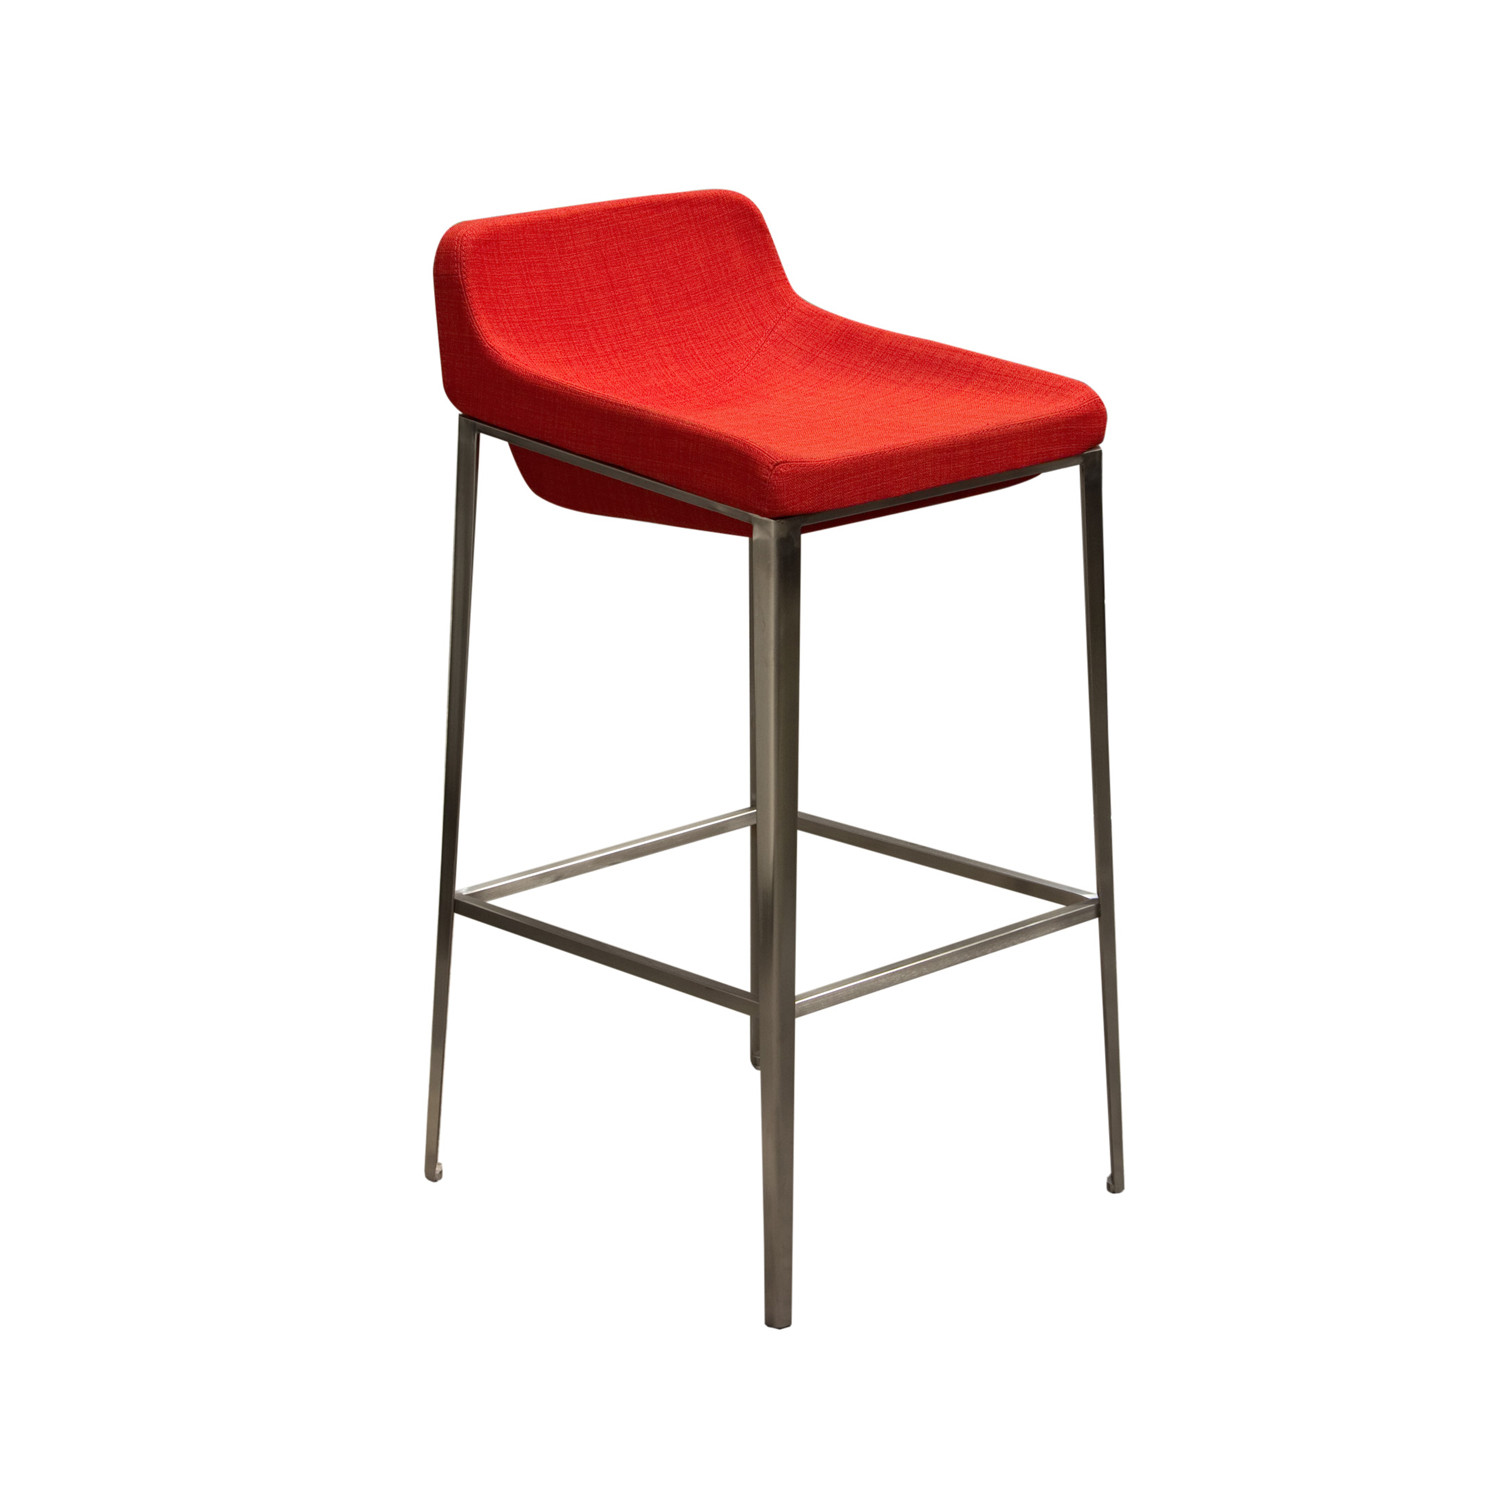 Contemporary Bar Stool Stainless Steel Base Gray  : 35b060e62355b991f06fedfcb4bf0b49large from www.touchofmodern.com size 1500 x 1500 jpeg 134kB